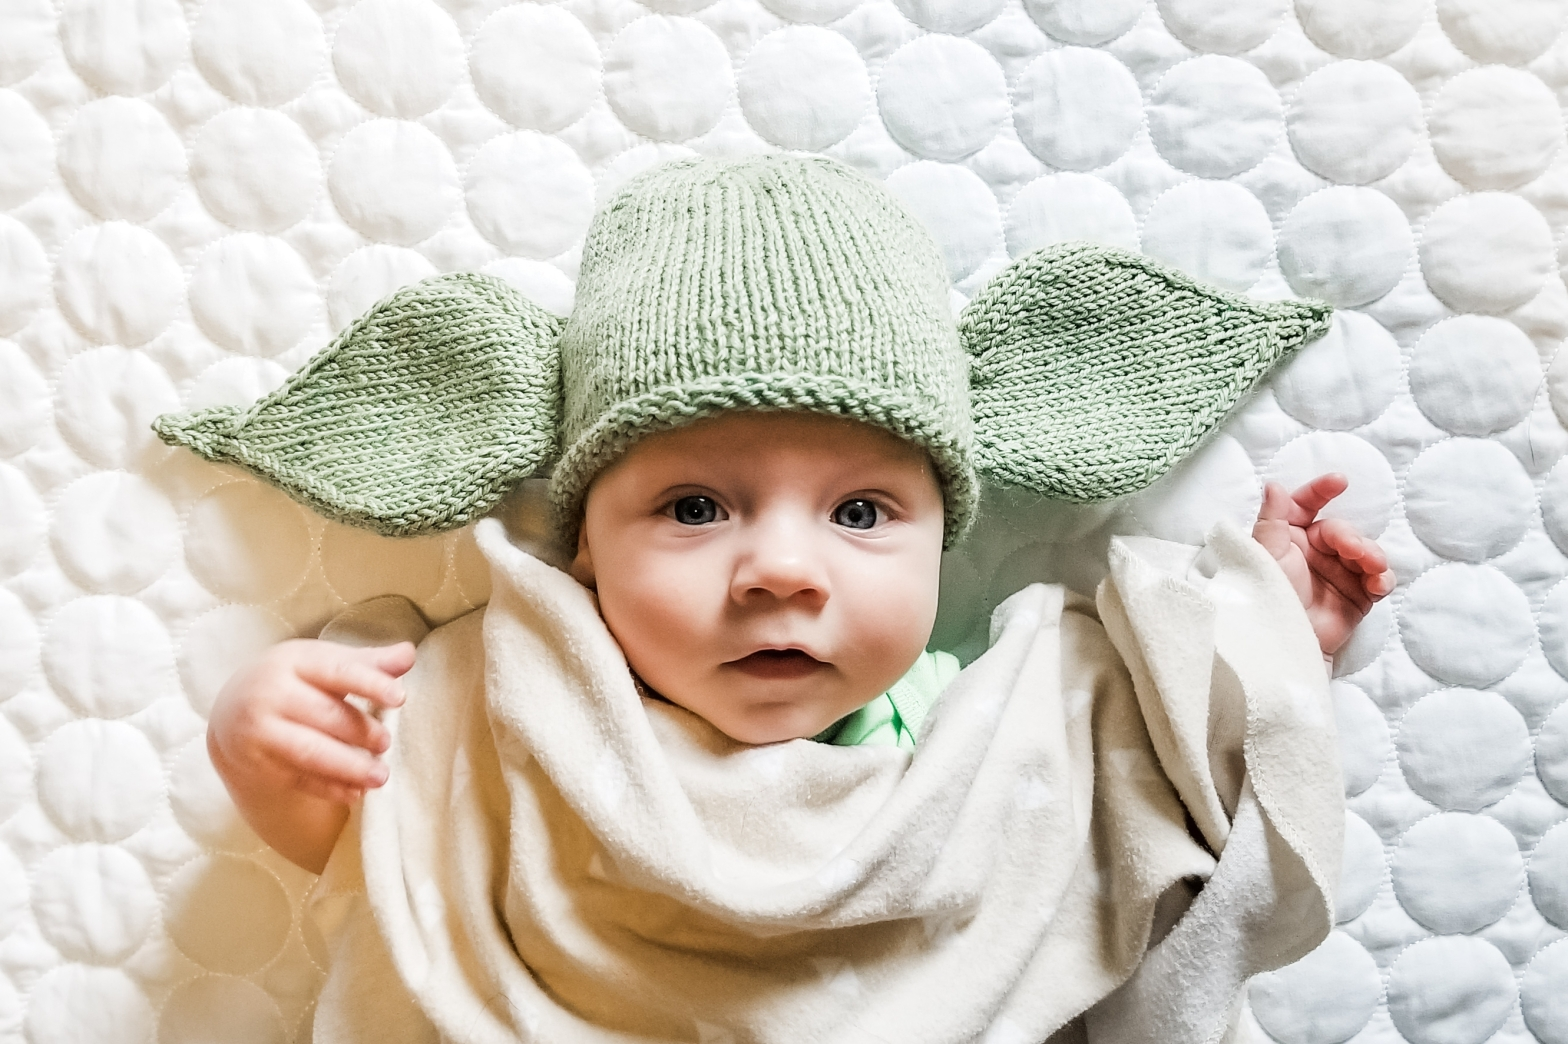 Baby wearing a knit Yoda hat